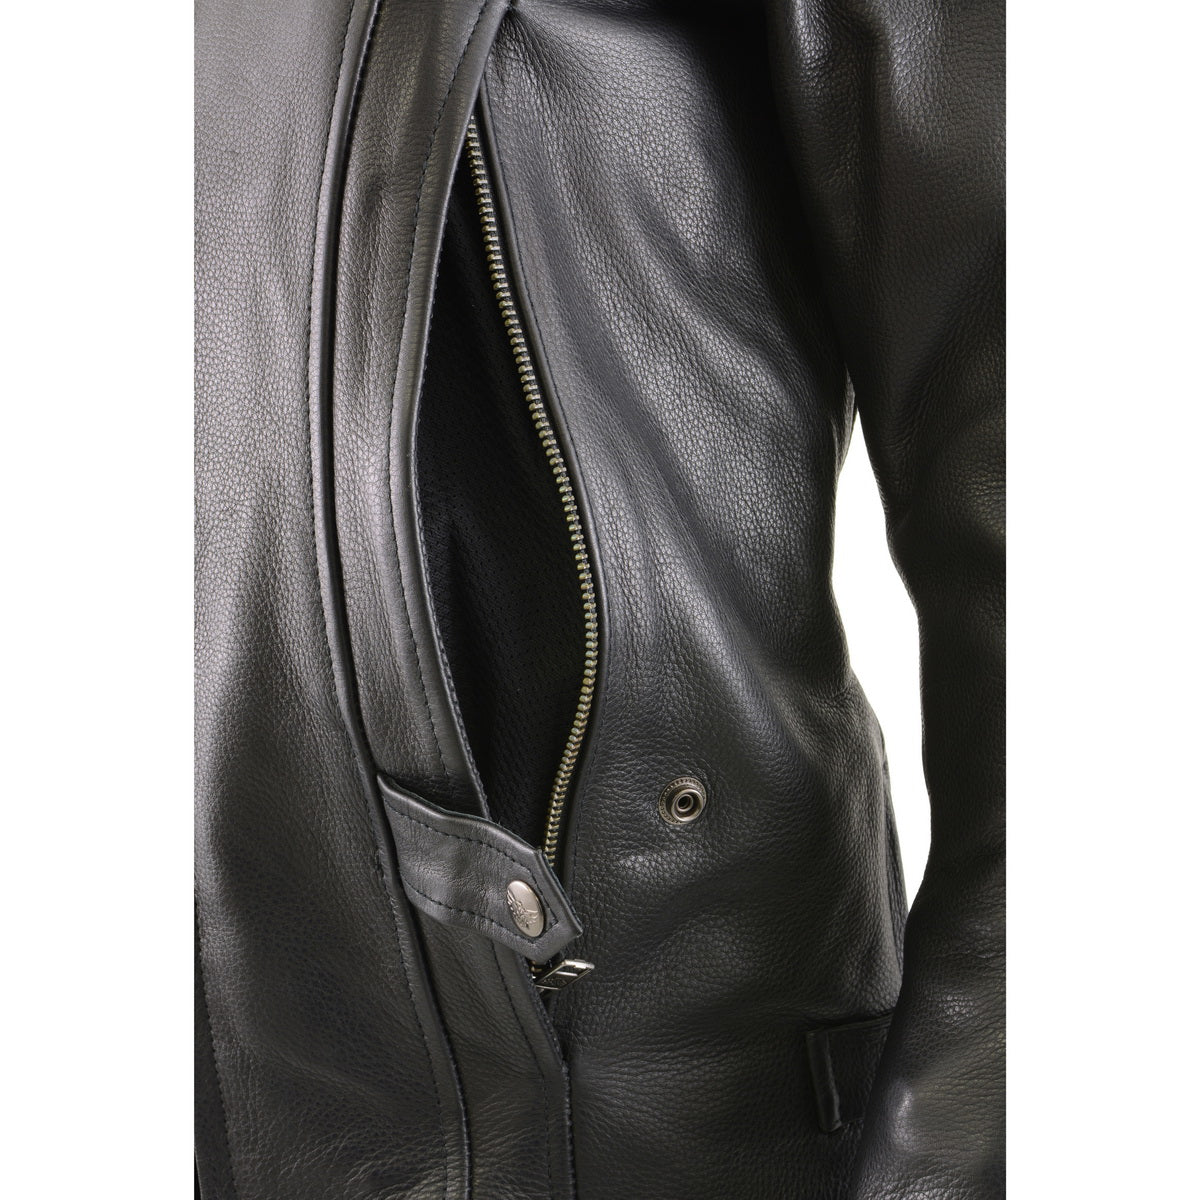 Milwaukee Leather MLL2530 Women's Vented Black Leather Scooter Jacket